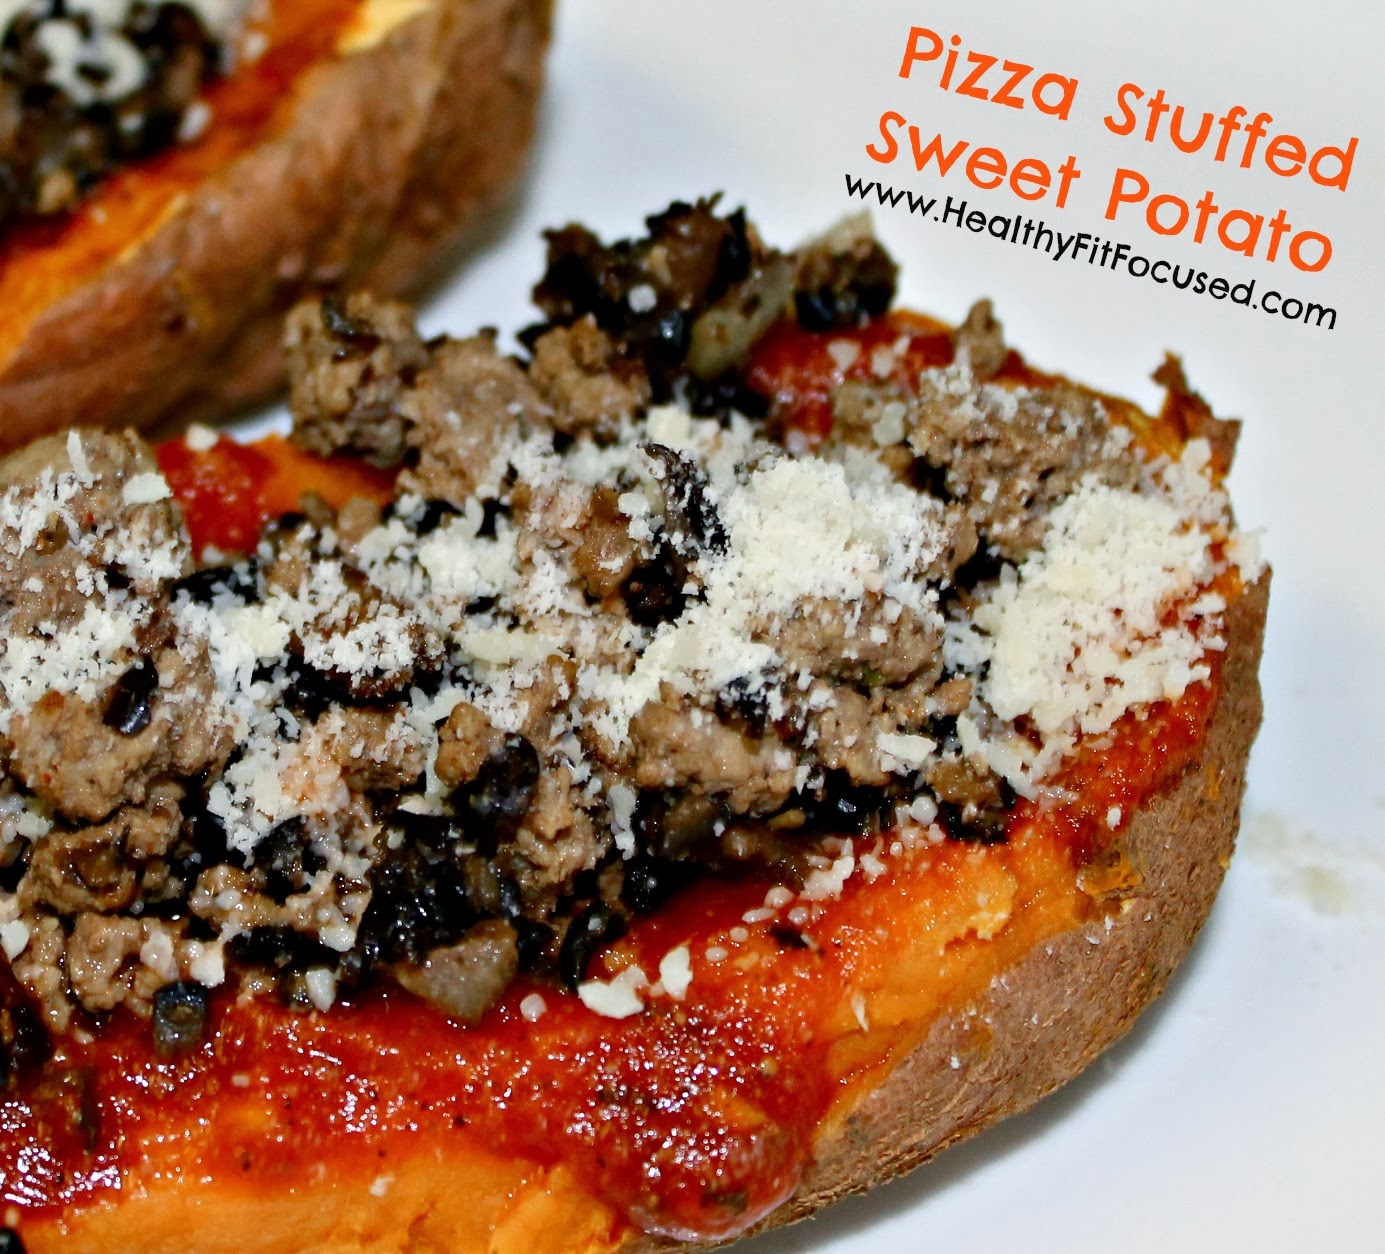 Pizza Stuffed Sweet Potato, www.HealthyFitFocused.com